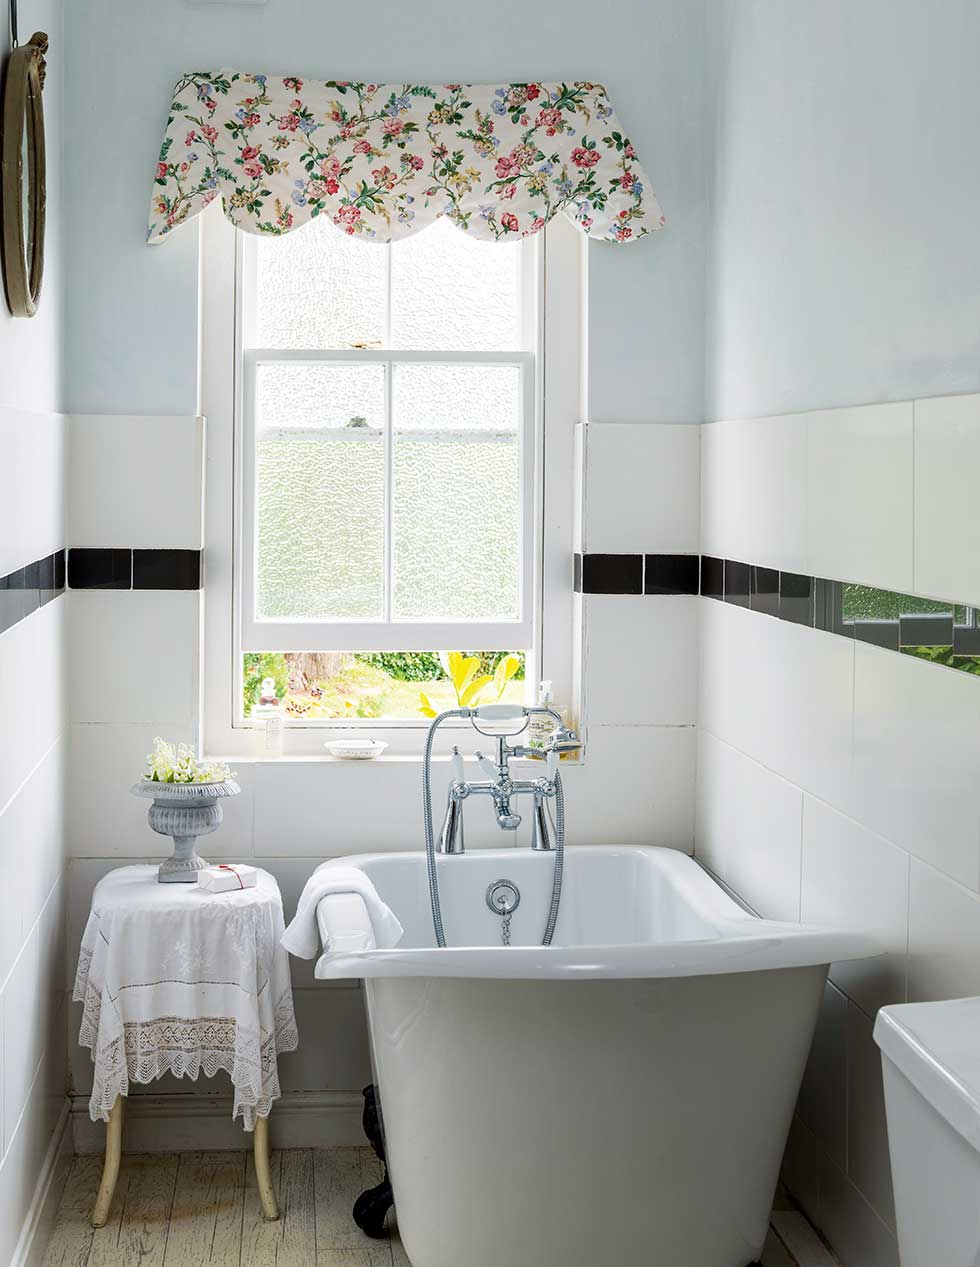 Narrow Bathroom With Slipper Tub And Obscured Glass Sash Window